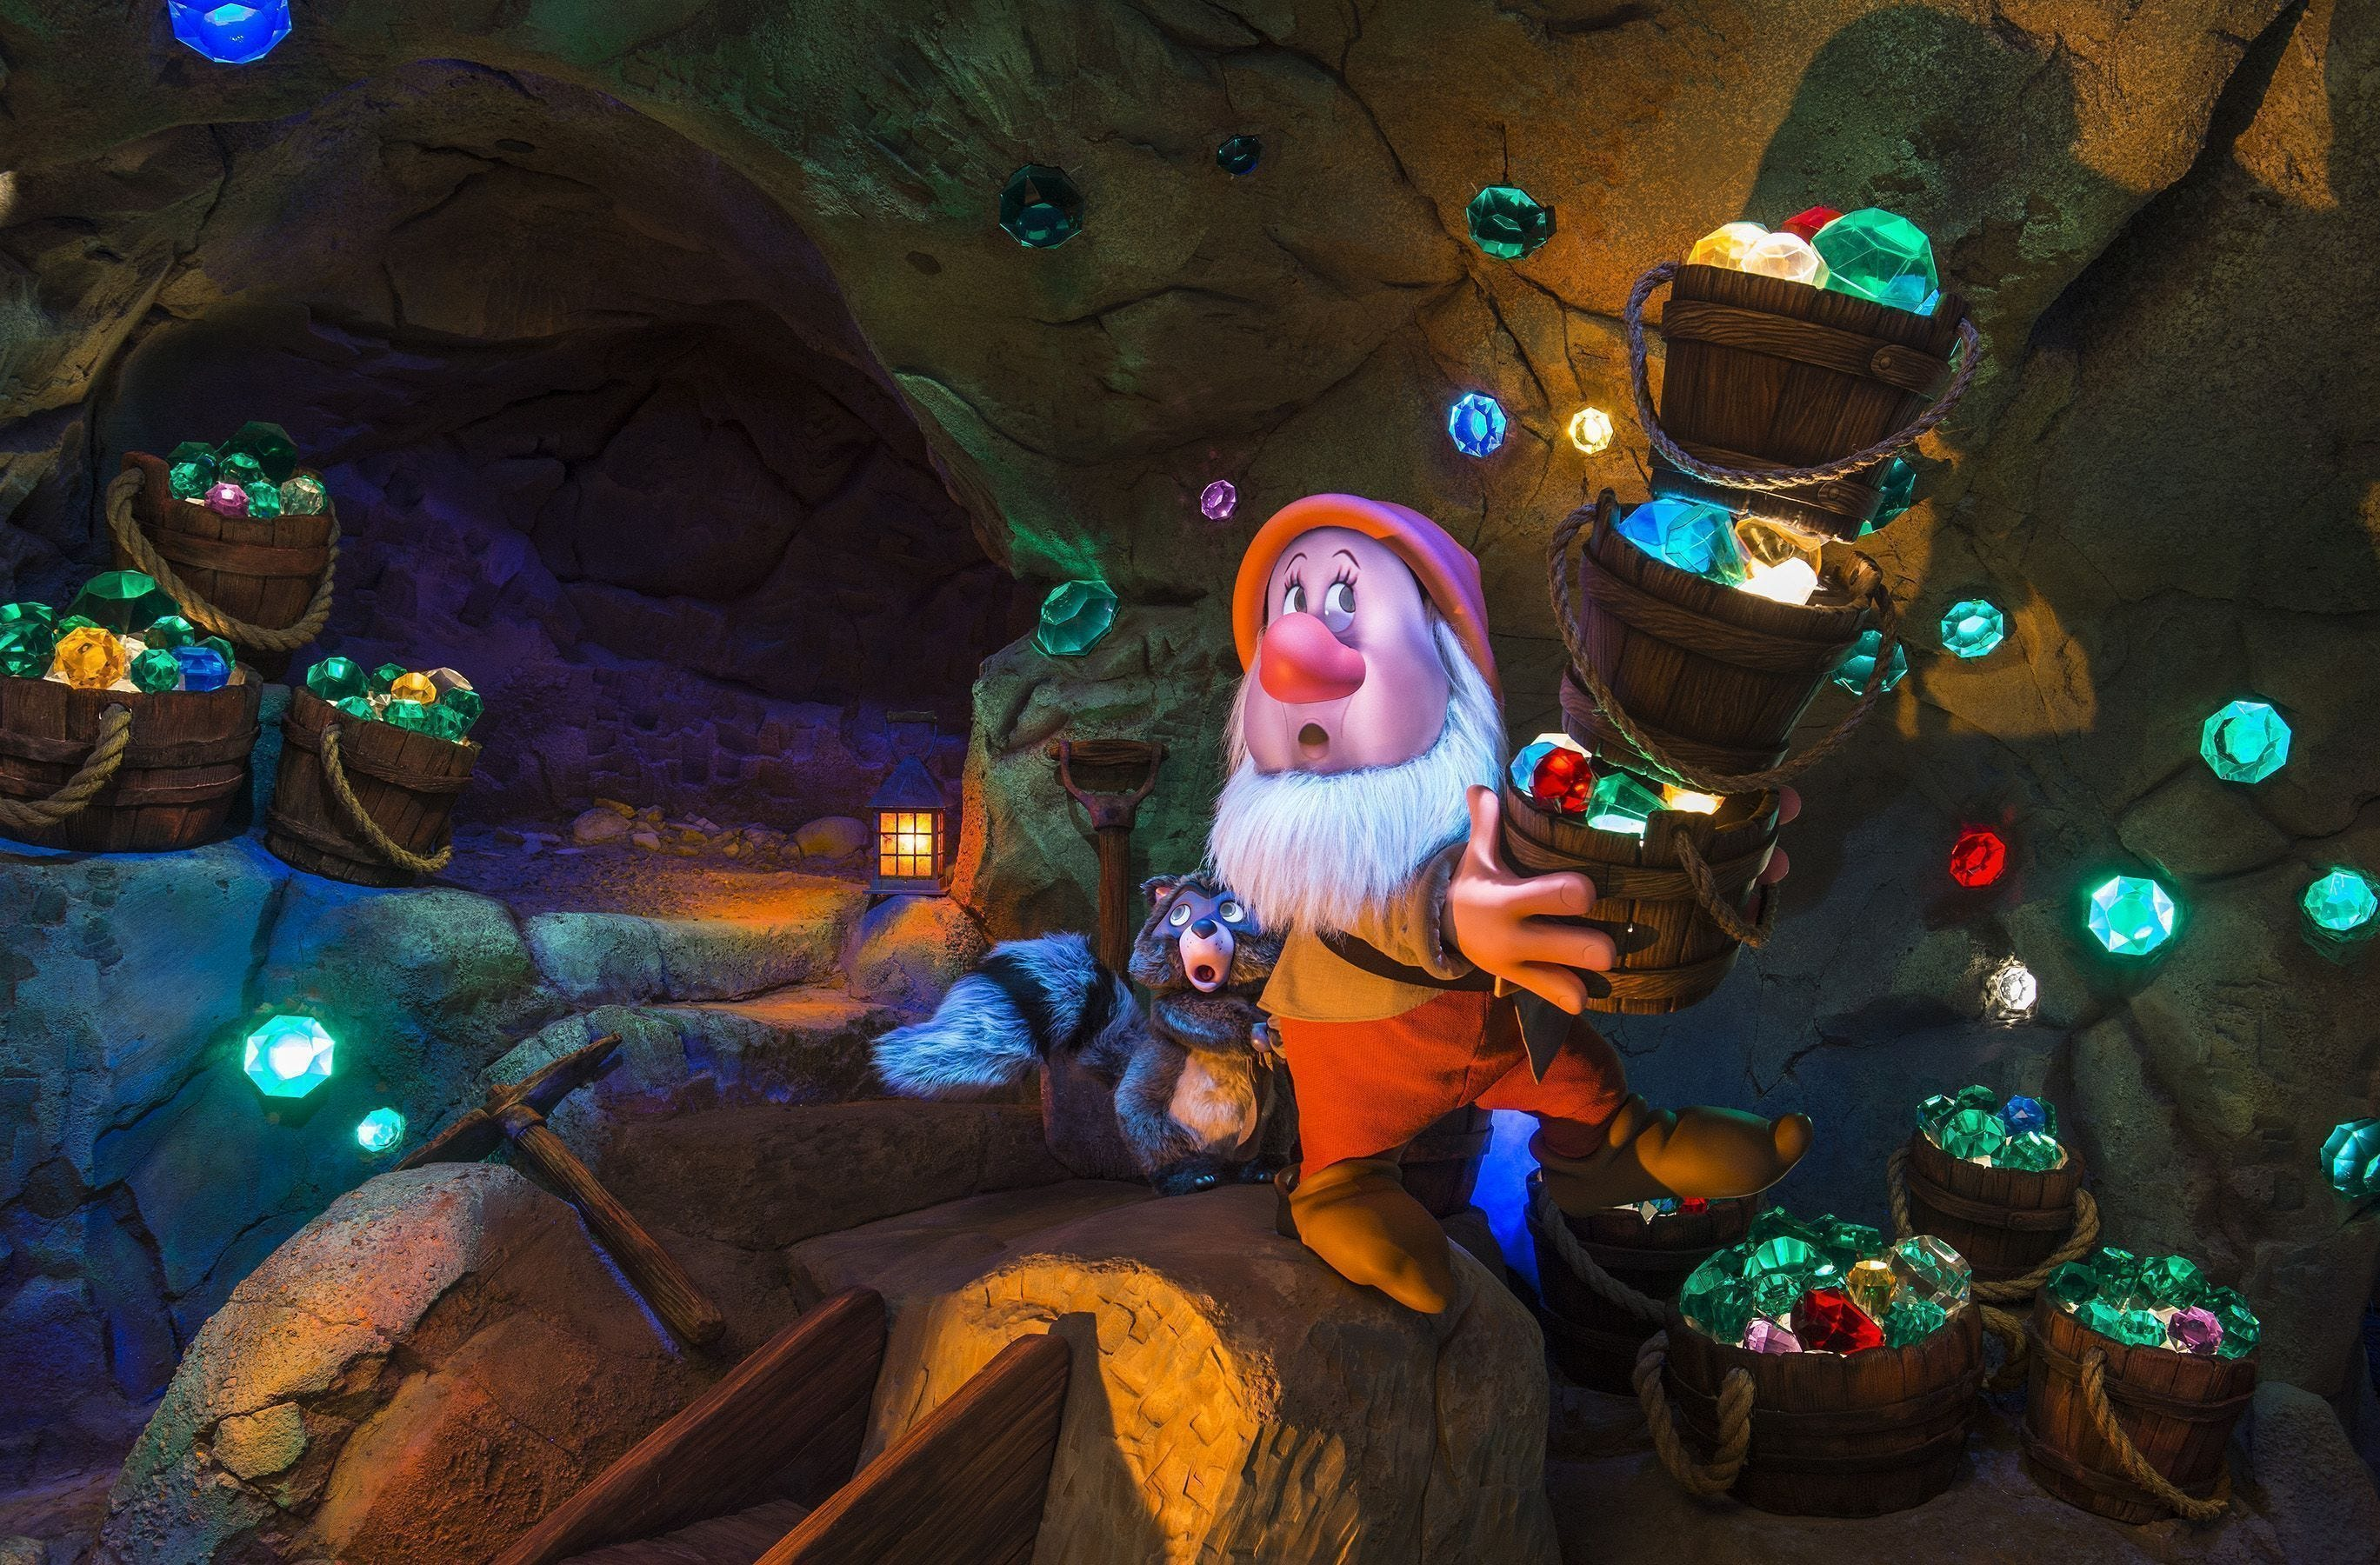 dwarfs mine seven train disney magic kingdom snow ride mining peek sneak attraction coaster walt roller wdw usatoday inside unlike